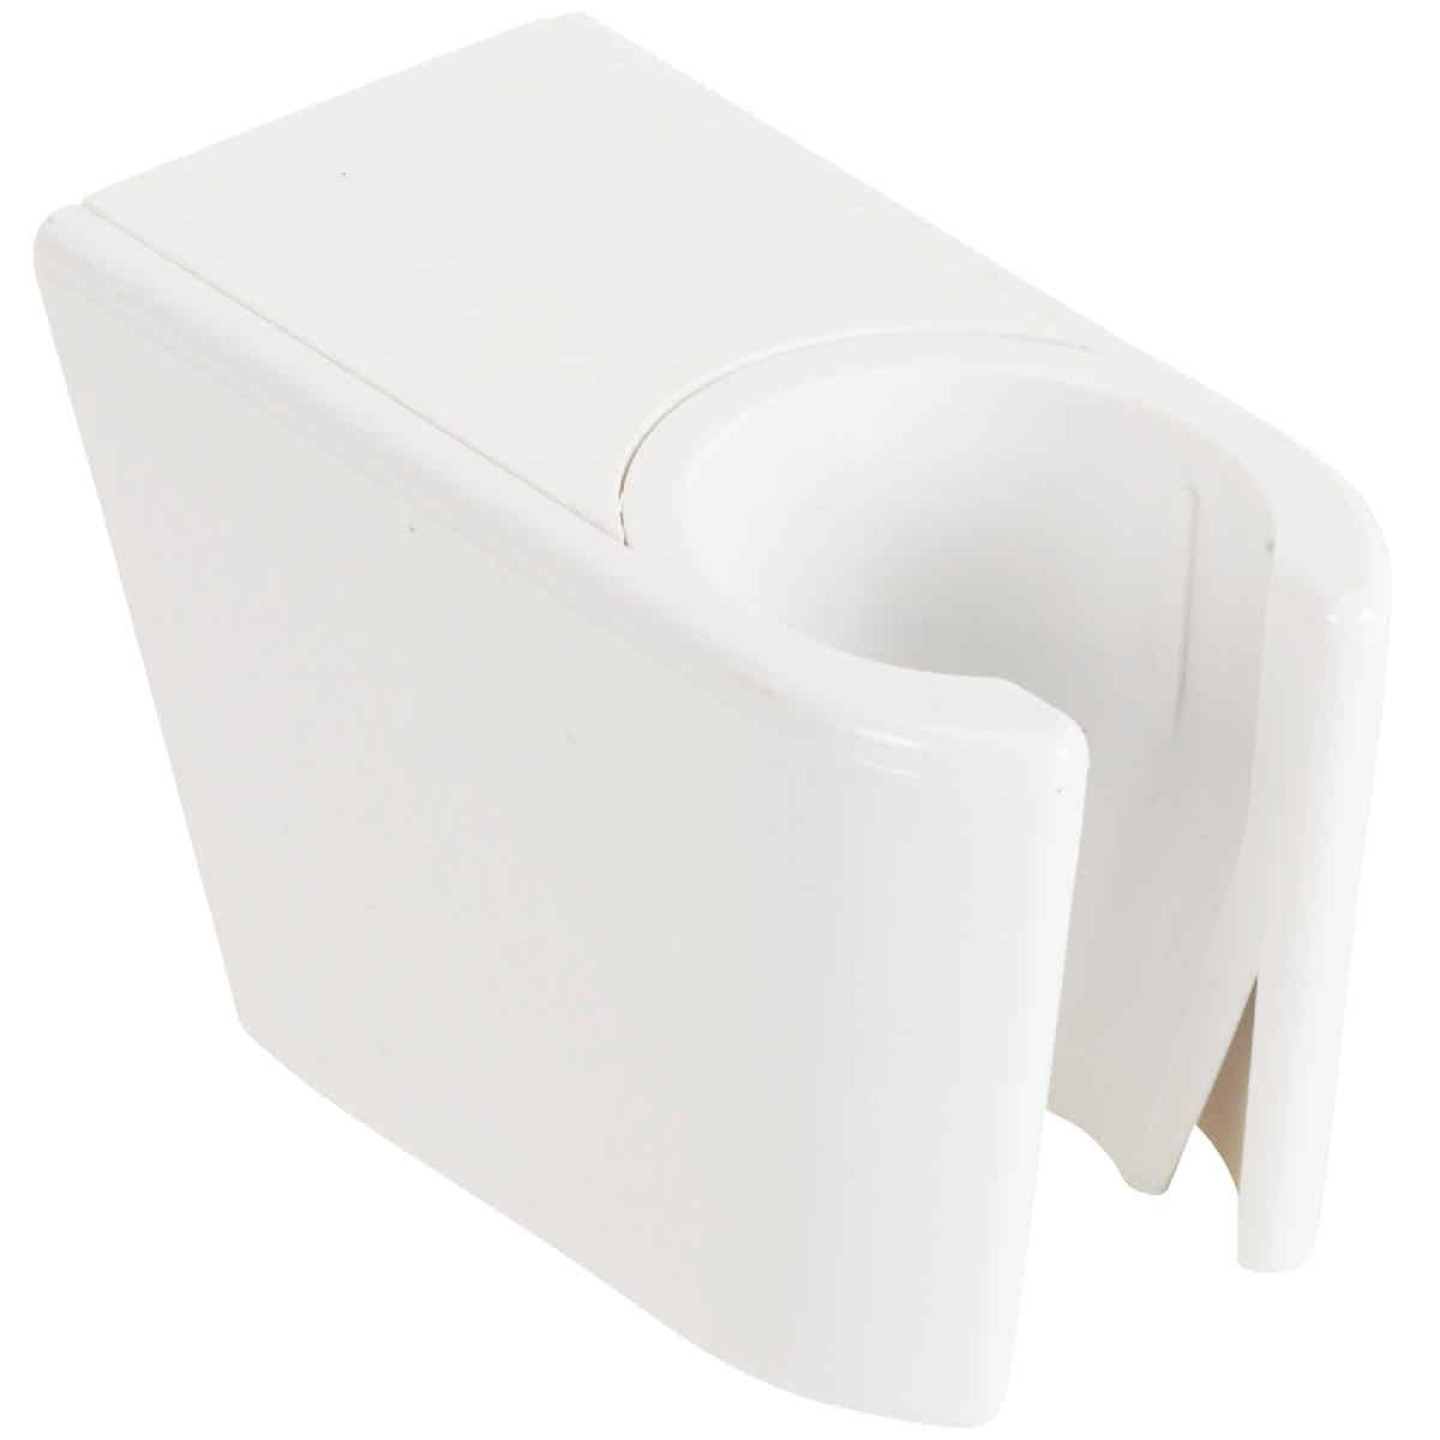 Do it White Plastic Shower Wall Mount Image 3